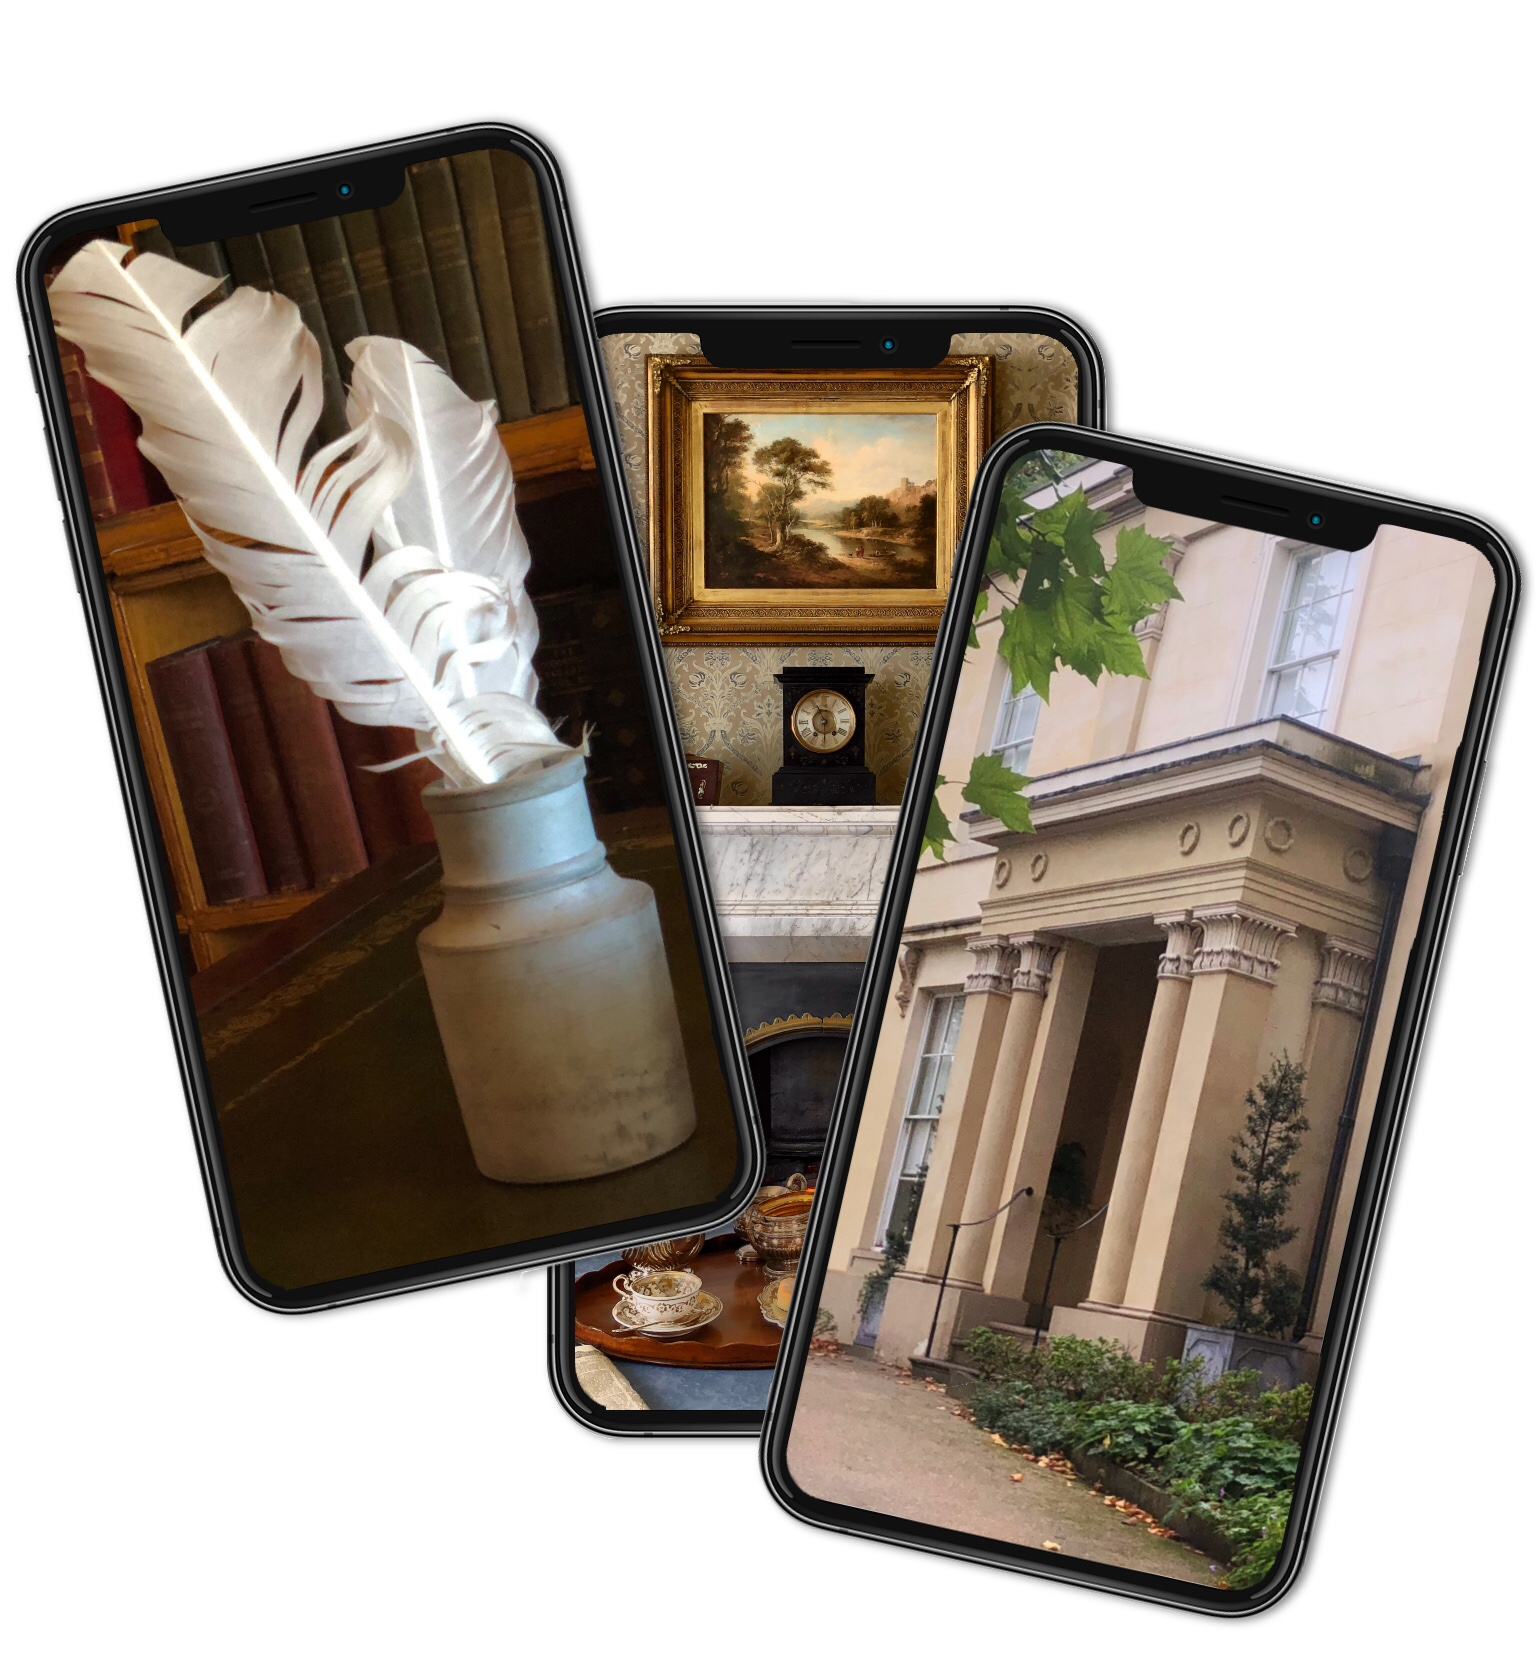 Elizabeth Gaskell's House - MANCHESTERSUNDAY 24TH NOVEMBER 2019Elizabeth Gaskell's House is the former home of the famous author & her family. Her novels include Cranford, North and South and Wives and Daughters. This beautifully restored home has spectacular period rooms & villa garden.